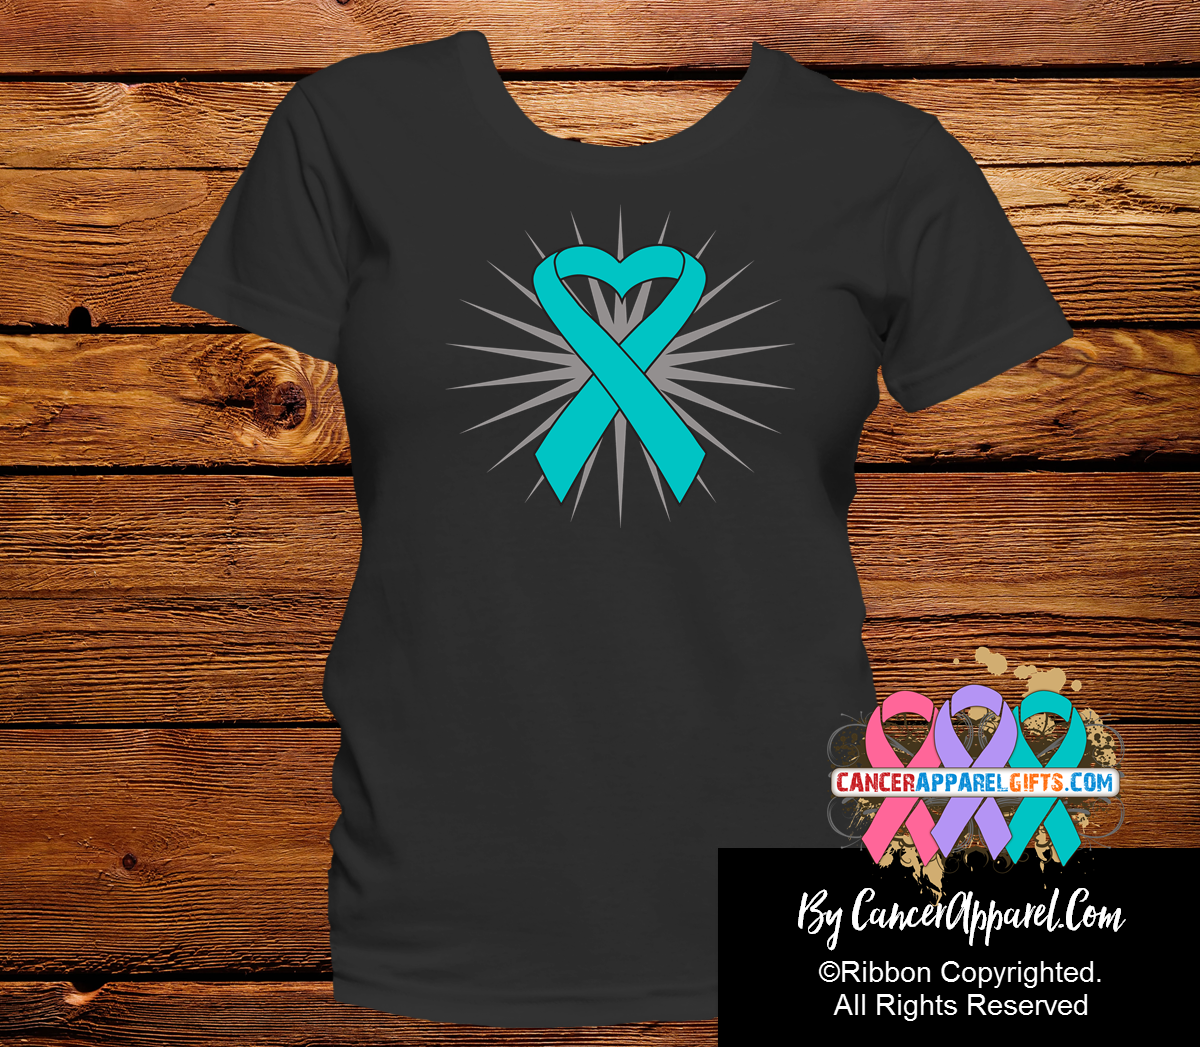 Ovarian Cancer Heart Ribbon Shirts - Cancer Apparel and Gifts